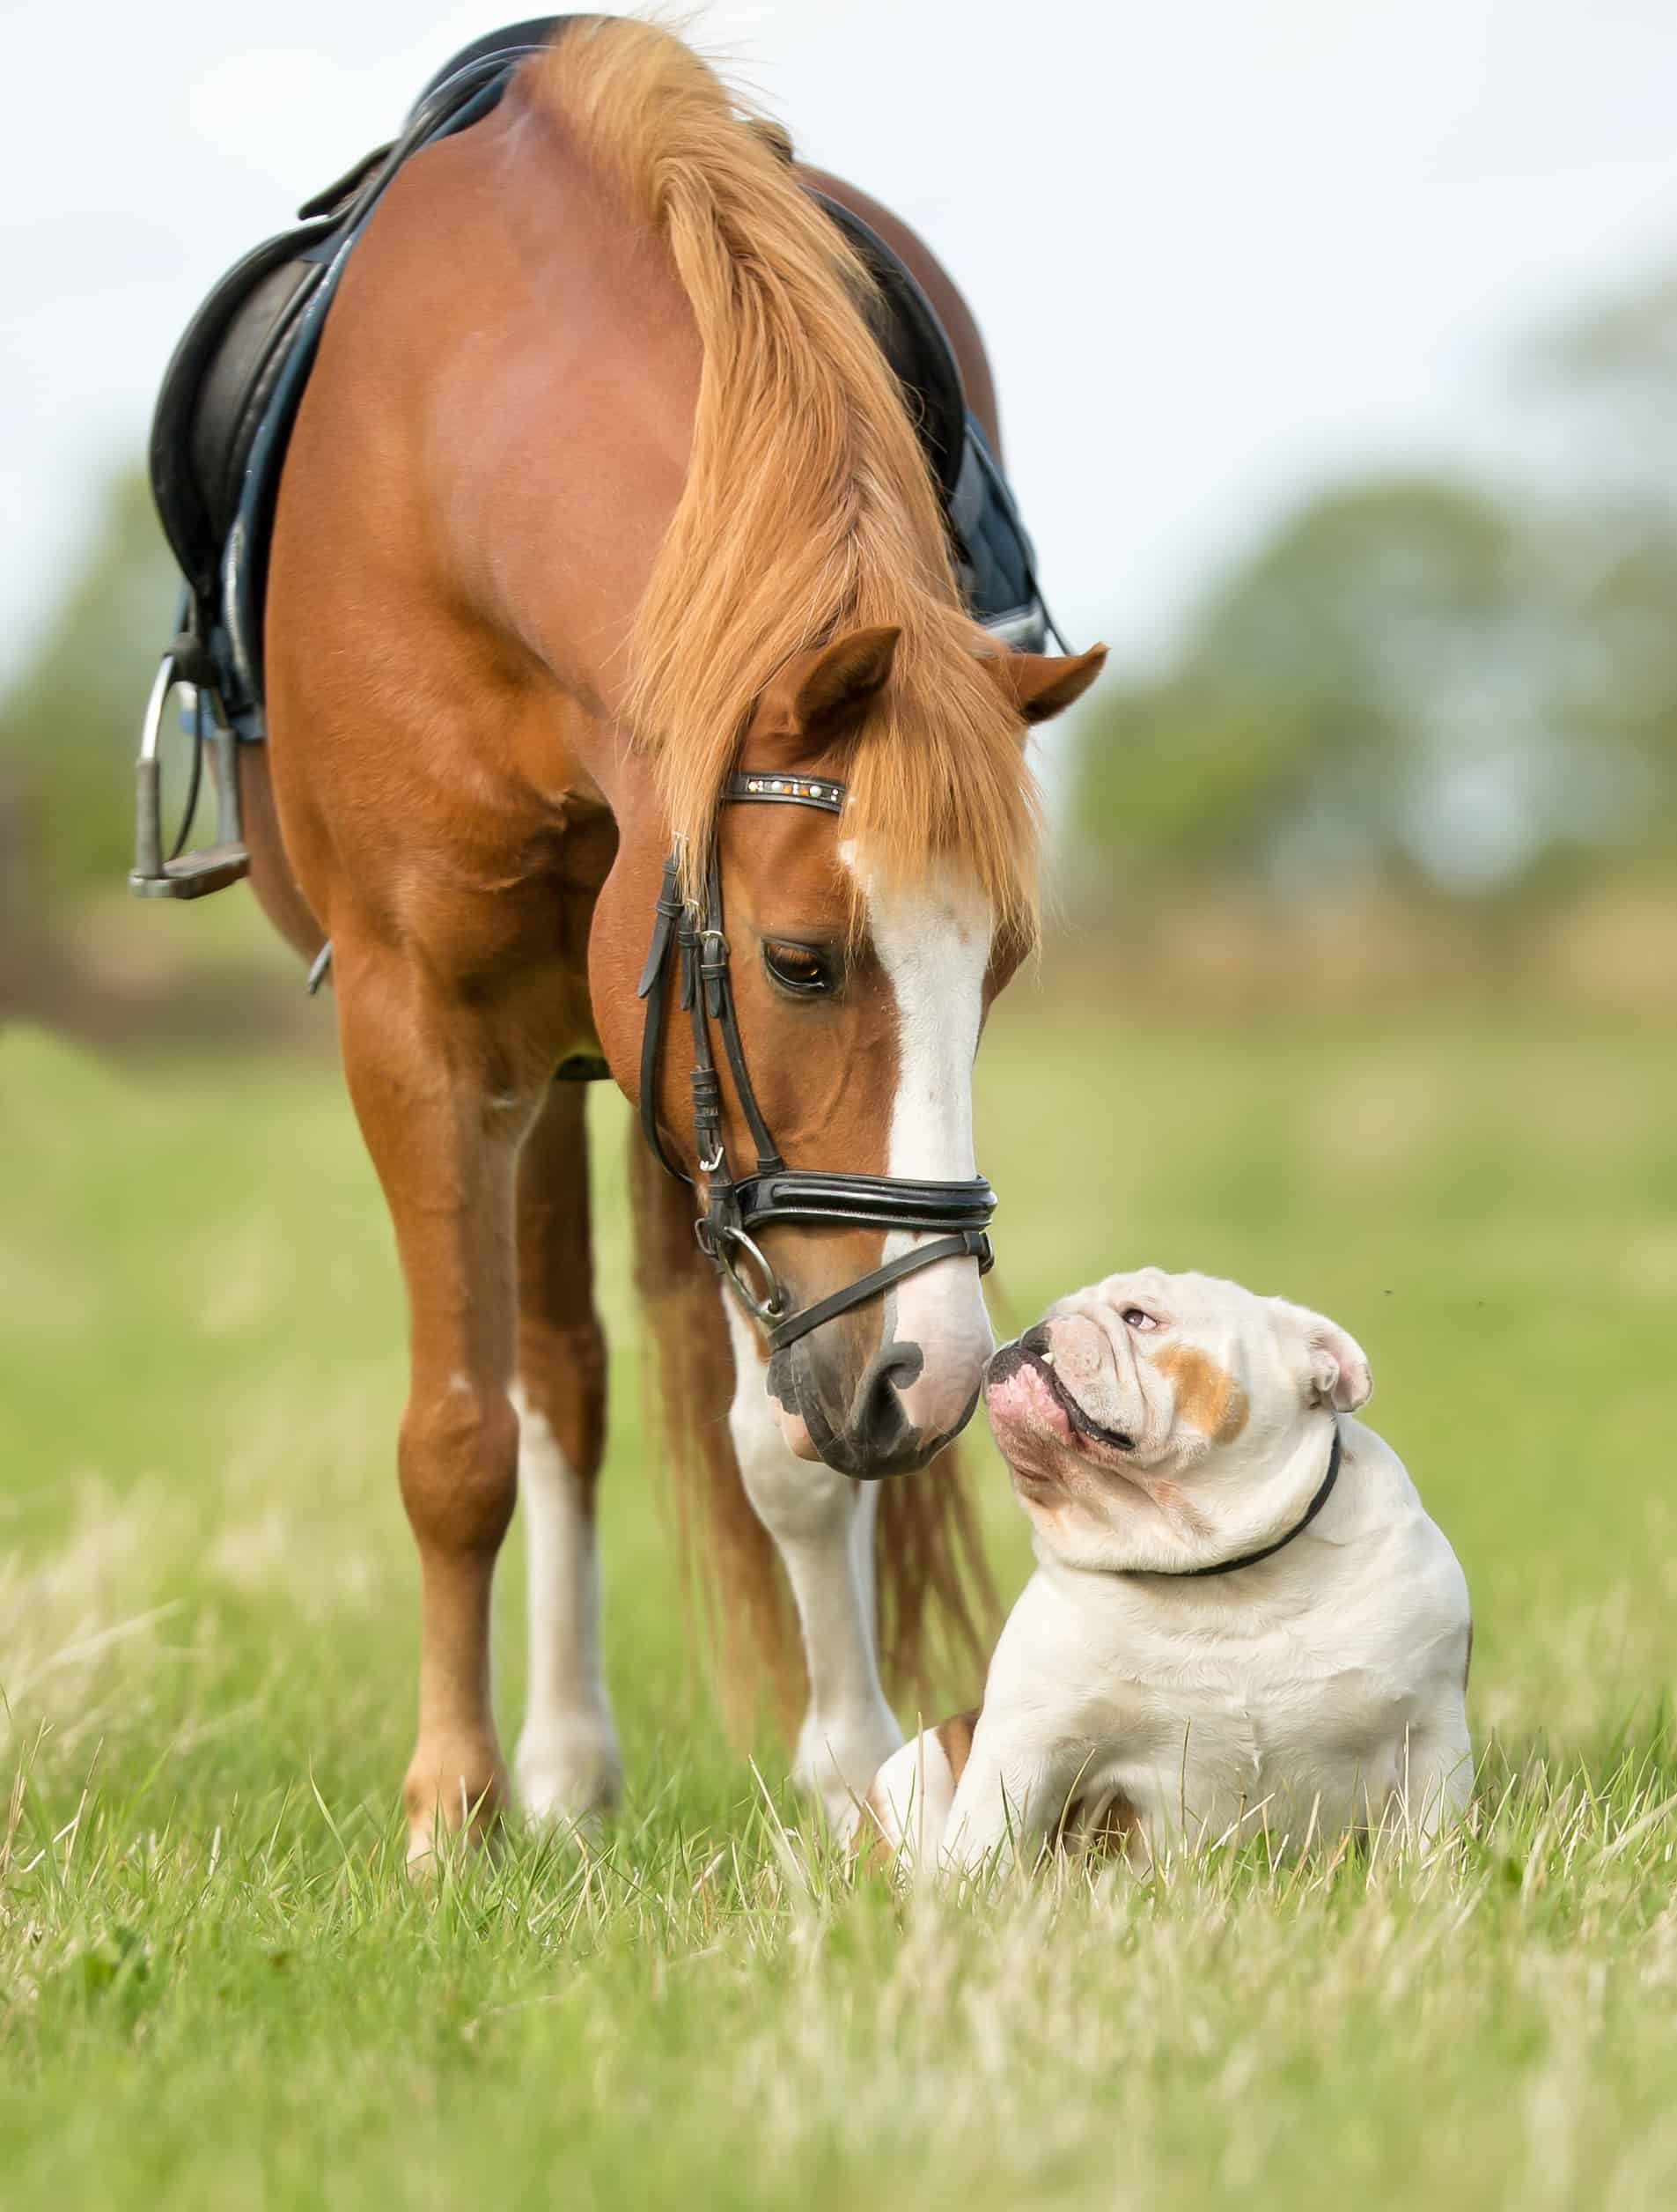 Dog and horse having a great time outdoors on grass during summer time.